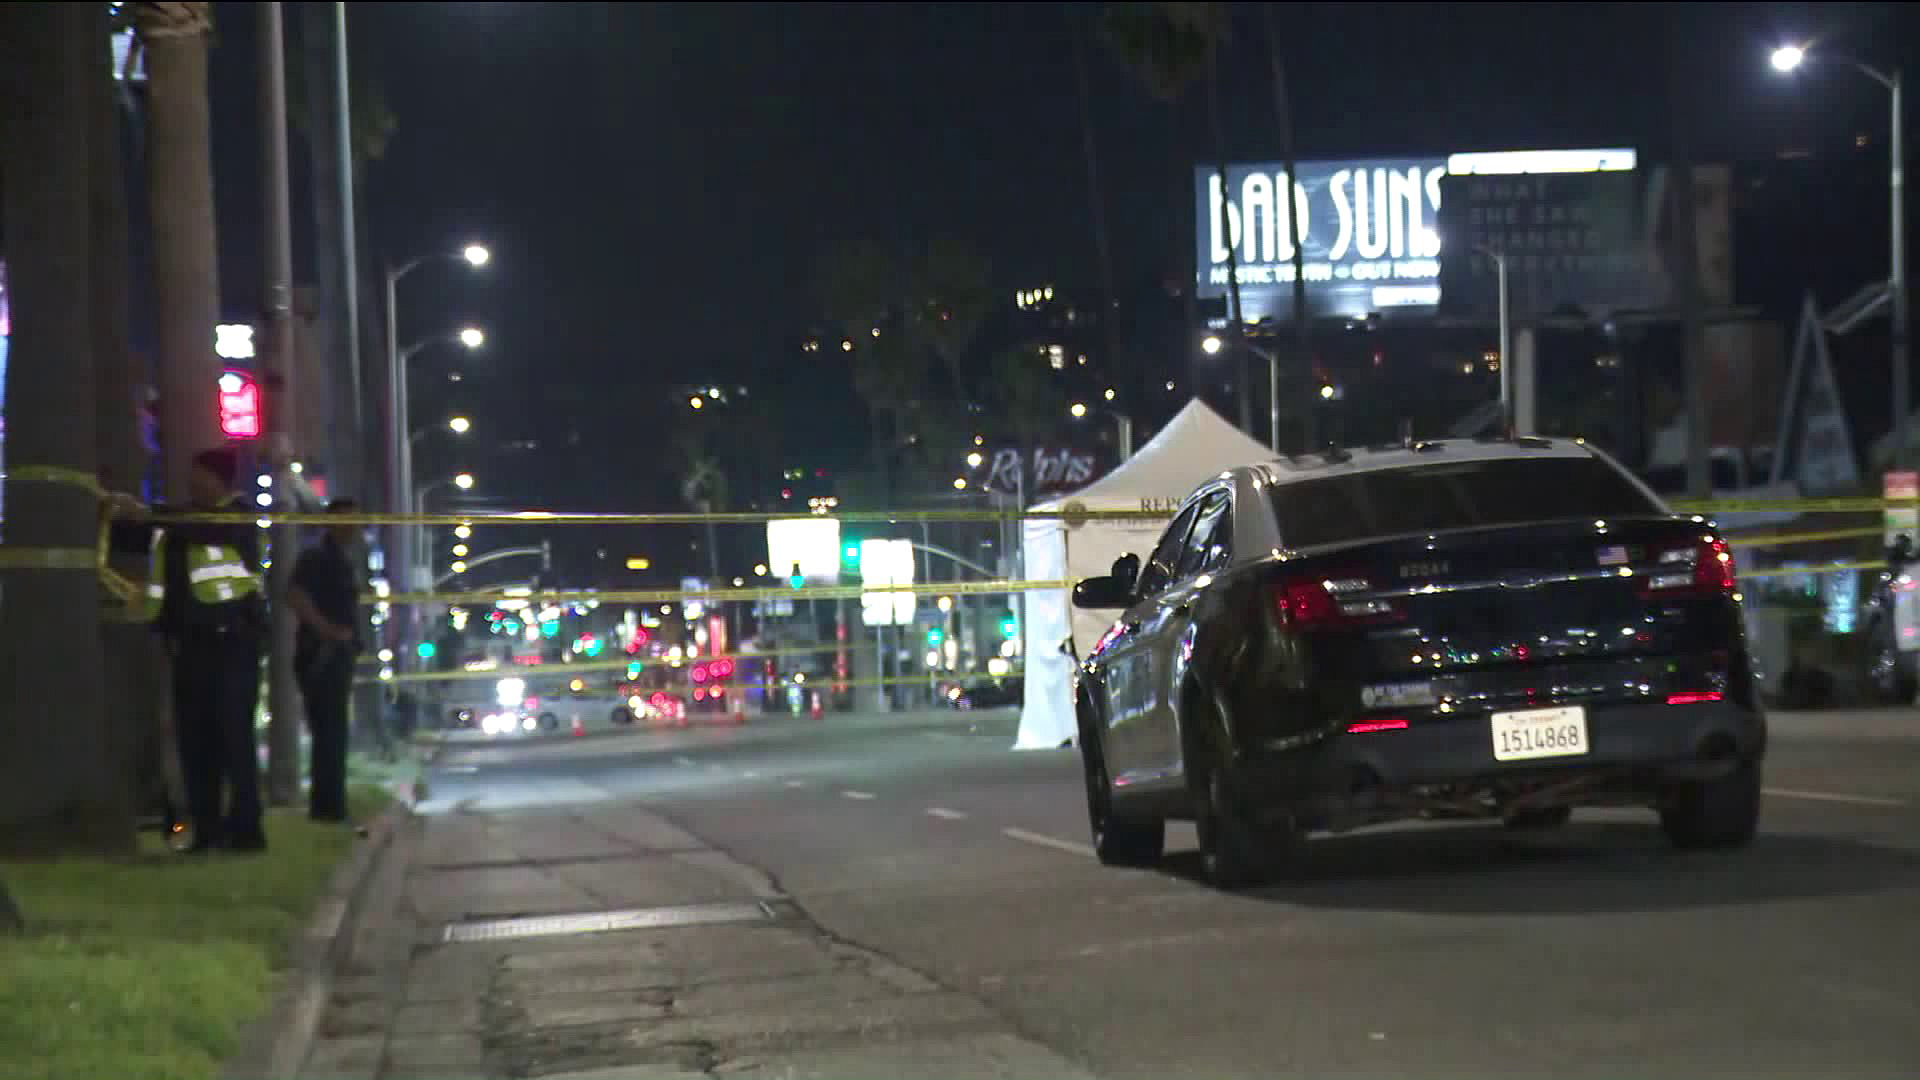 Police investigate a fatal hit-and-run crash in Hollywood on April 18, 2019. (Credit: KTLA)